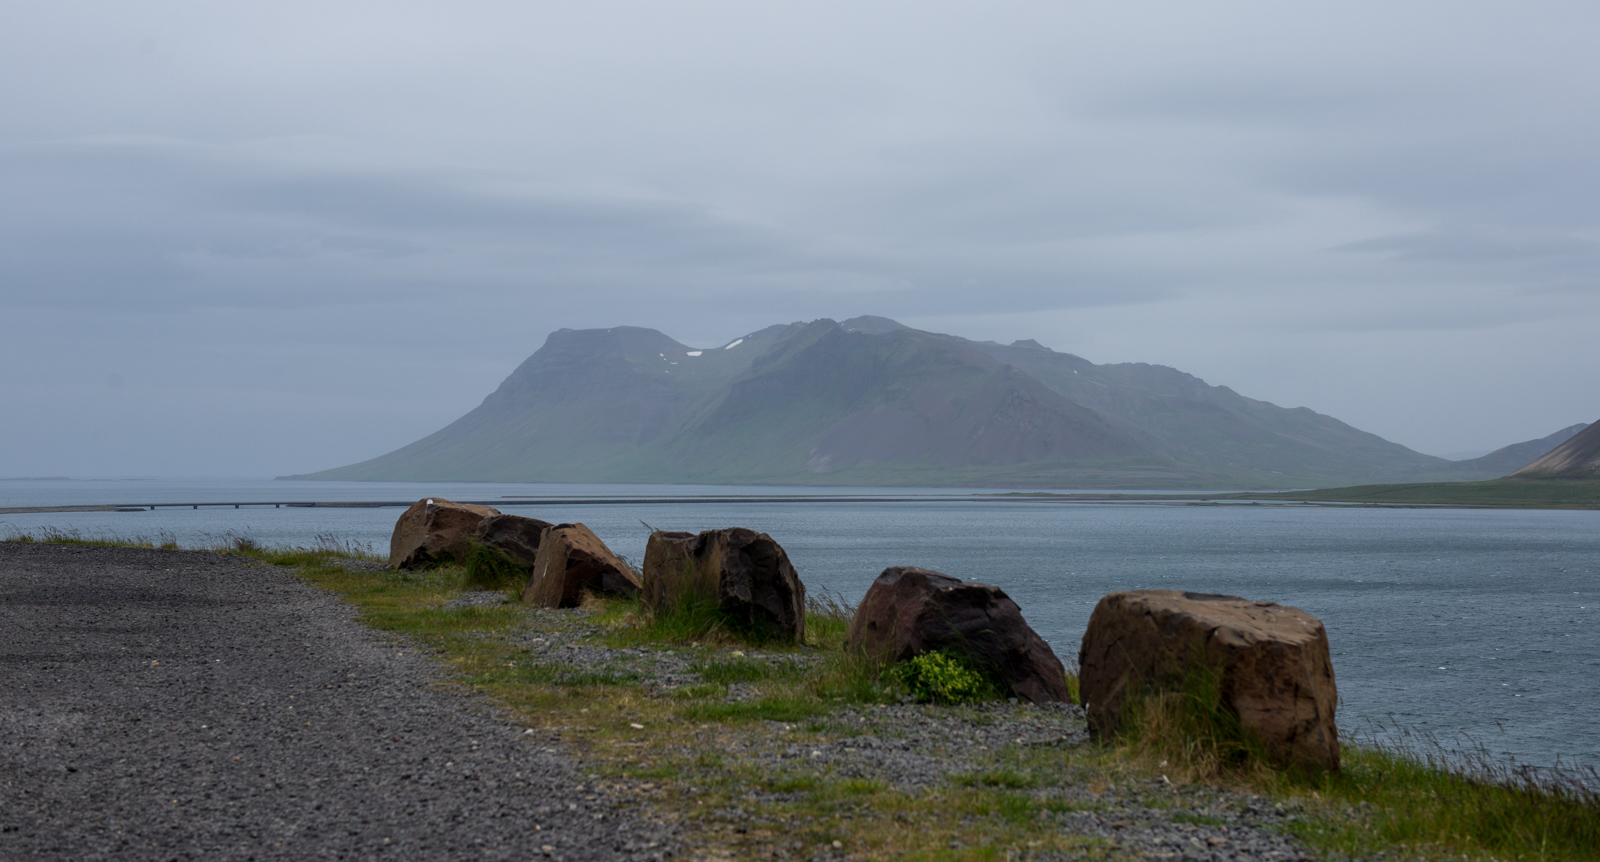 iceland_day_02_snaef-45.jpg